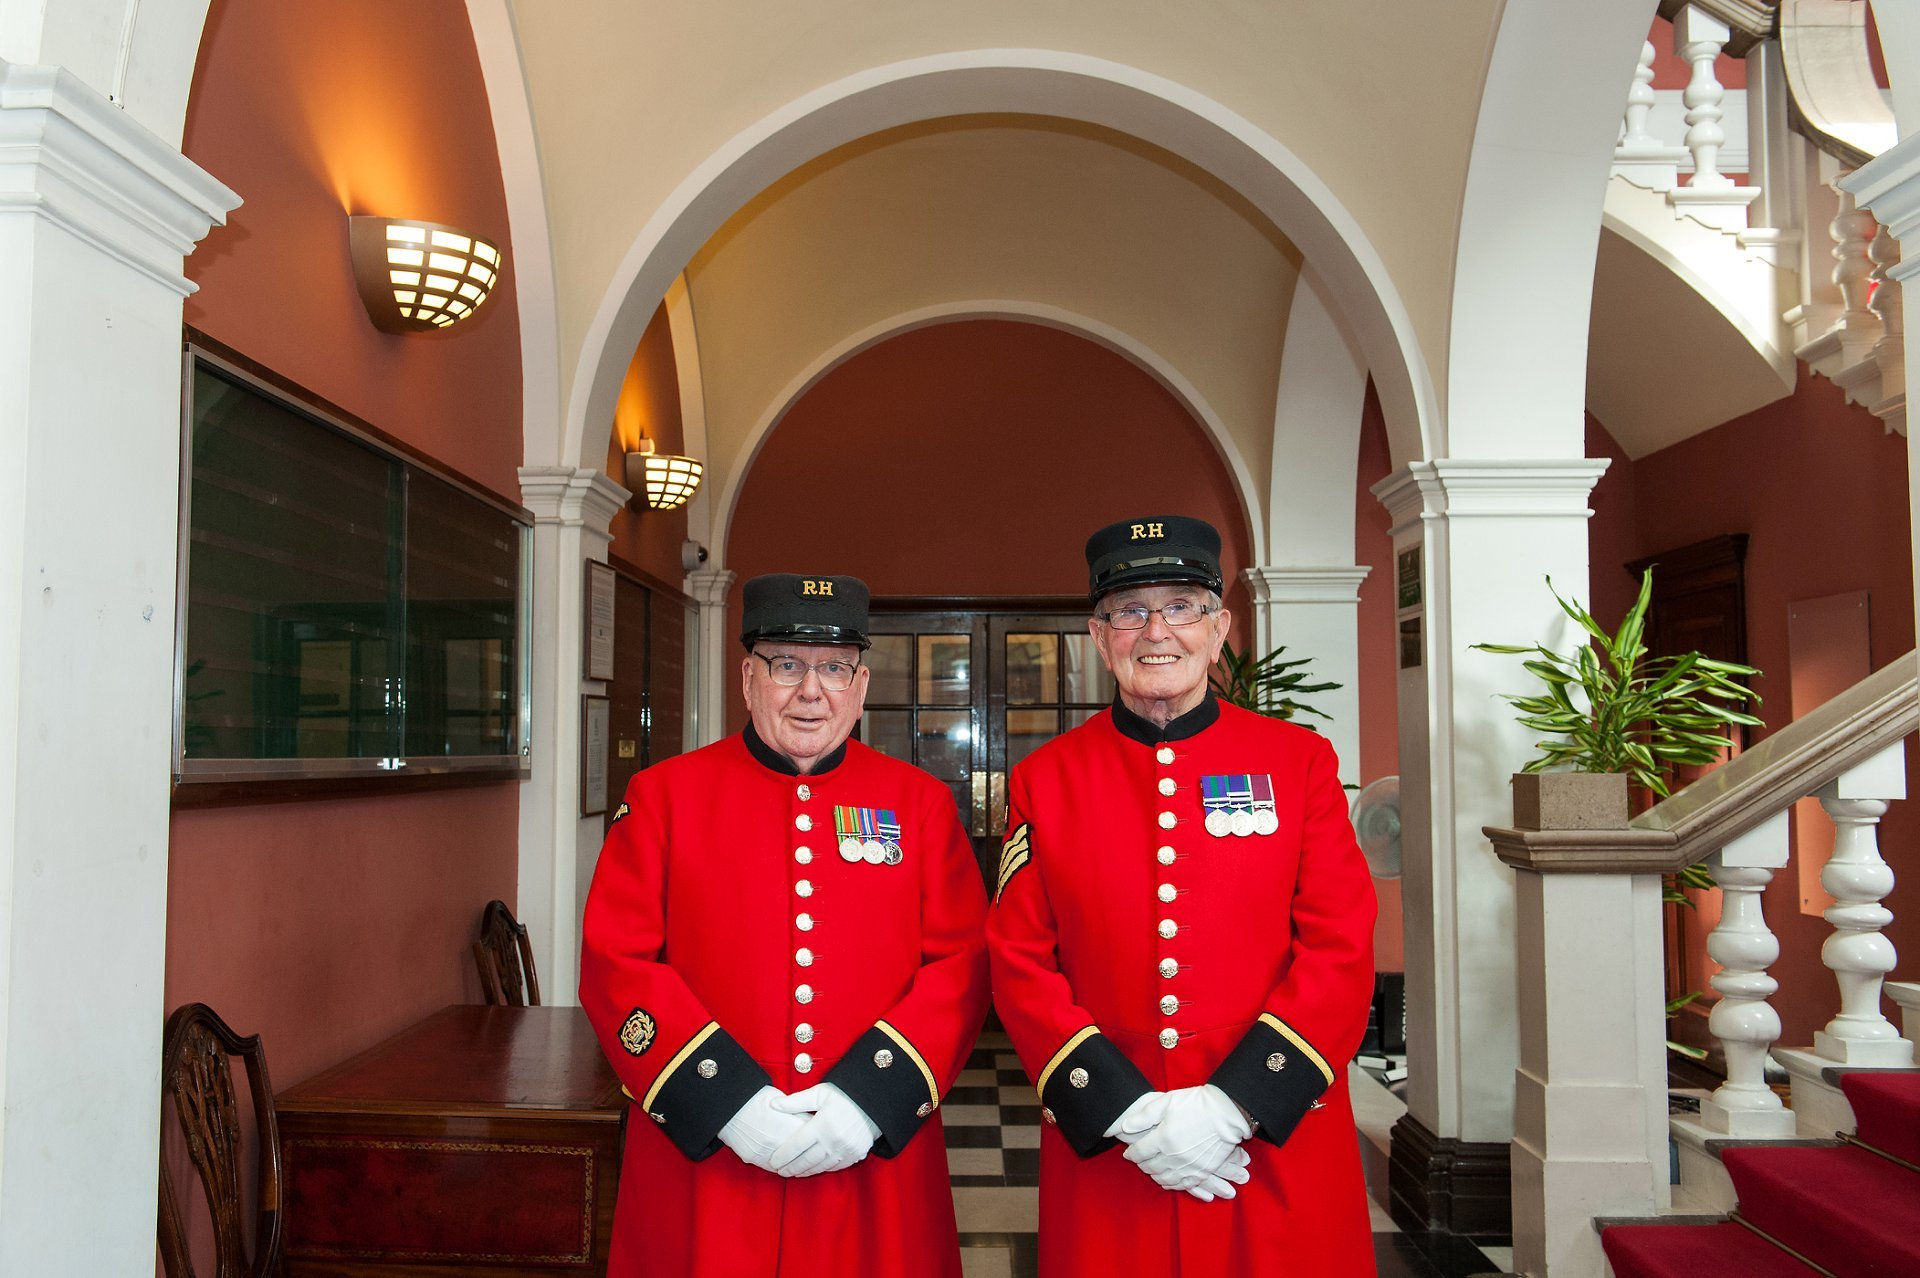 Chelsea Pensioners from London's Royal Hospital Chelsea